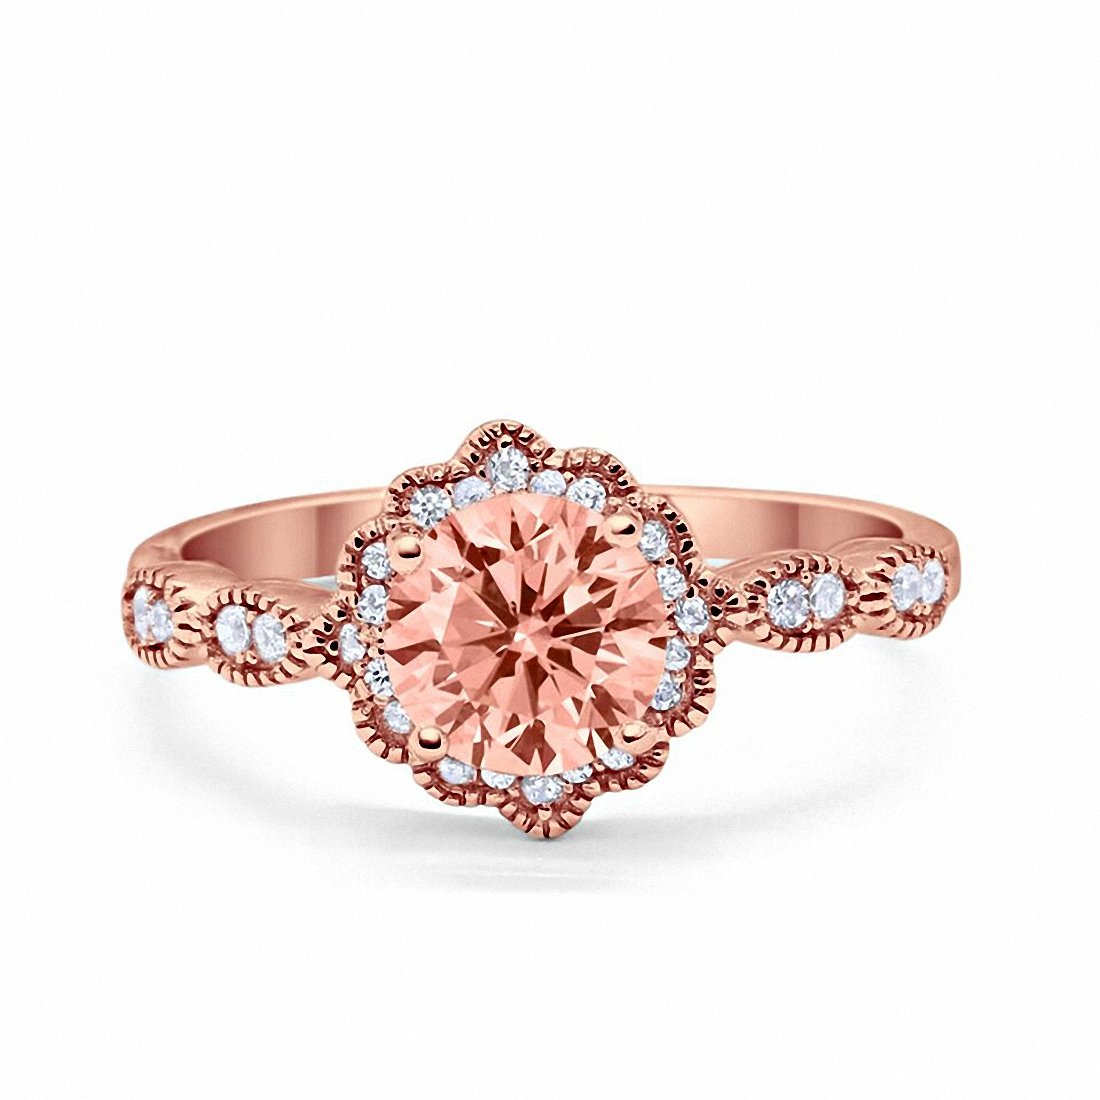 Floral Art Engagement Ring Round Rose Tone, Simulated Morganite CZ 925 Sterling Silver